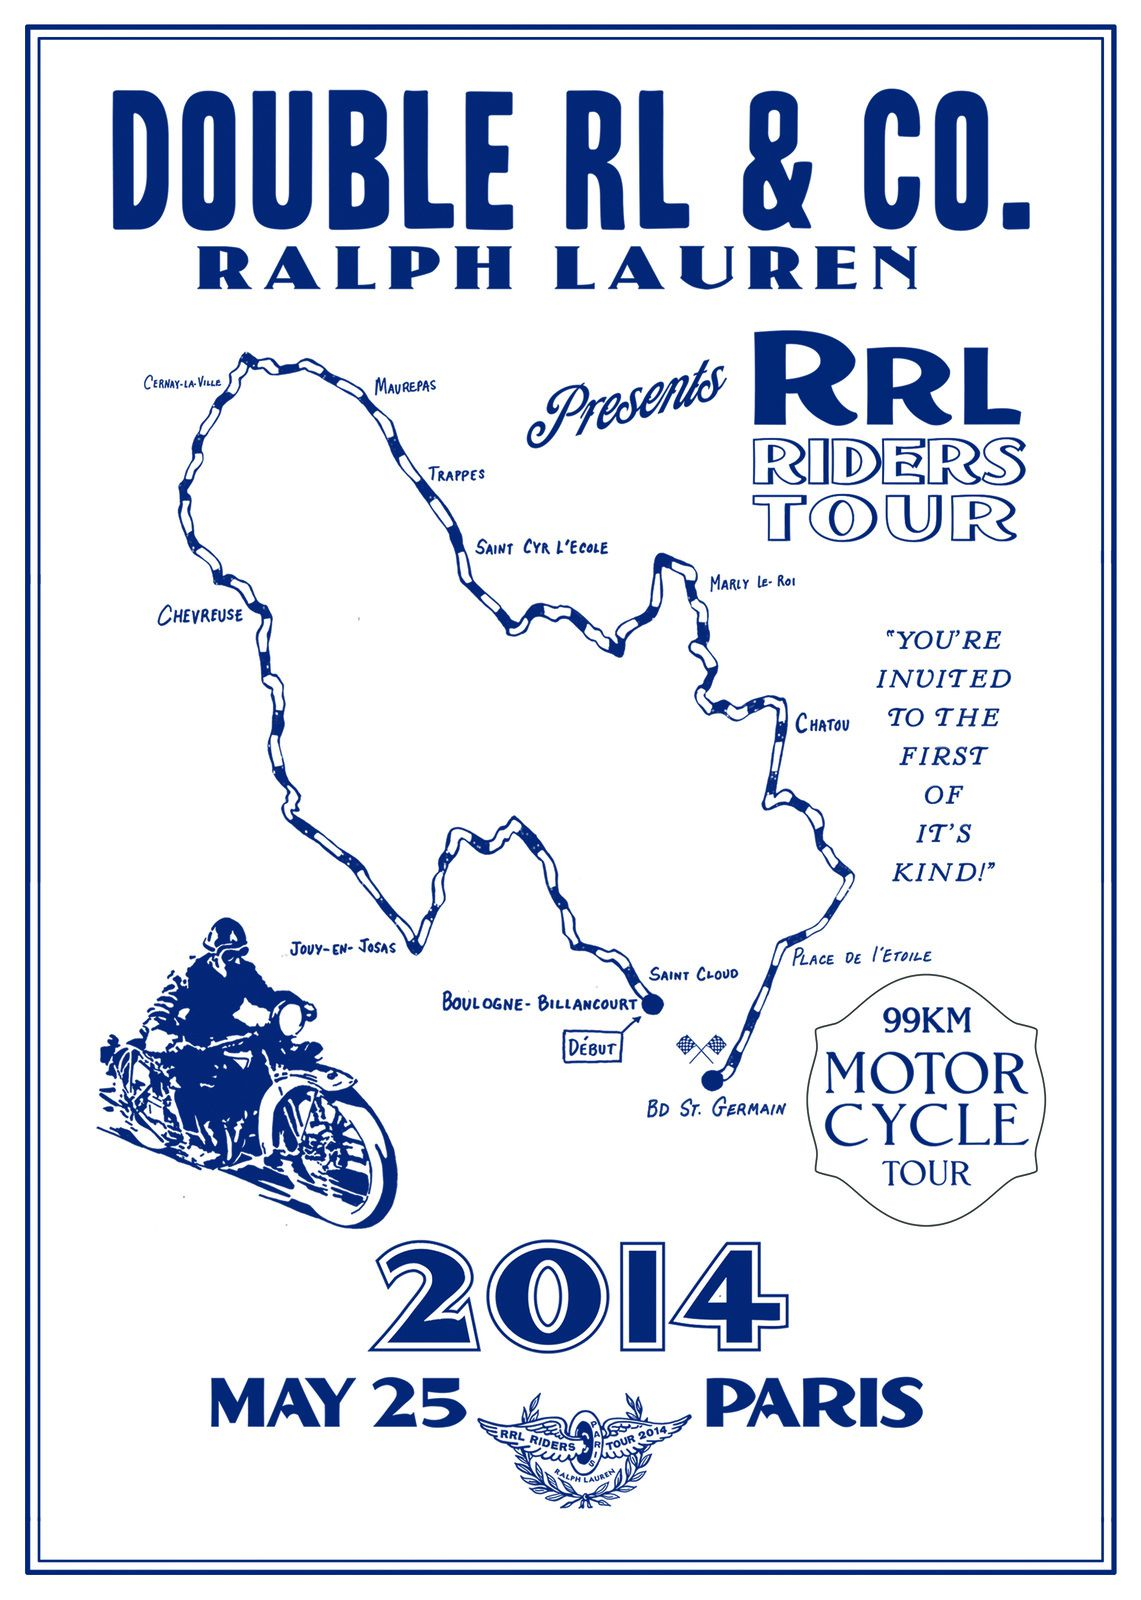 RRL Riders Tour - Ride Ralph Lauren à Paris le Dimanche 25 Mai